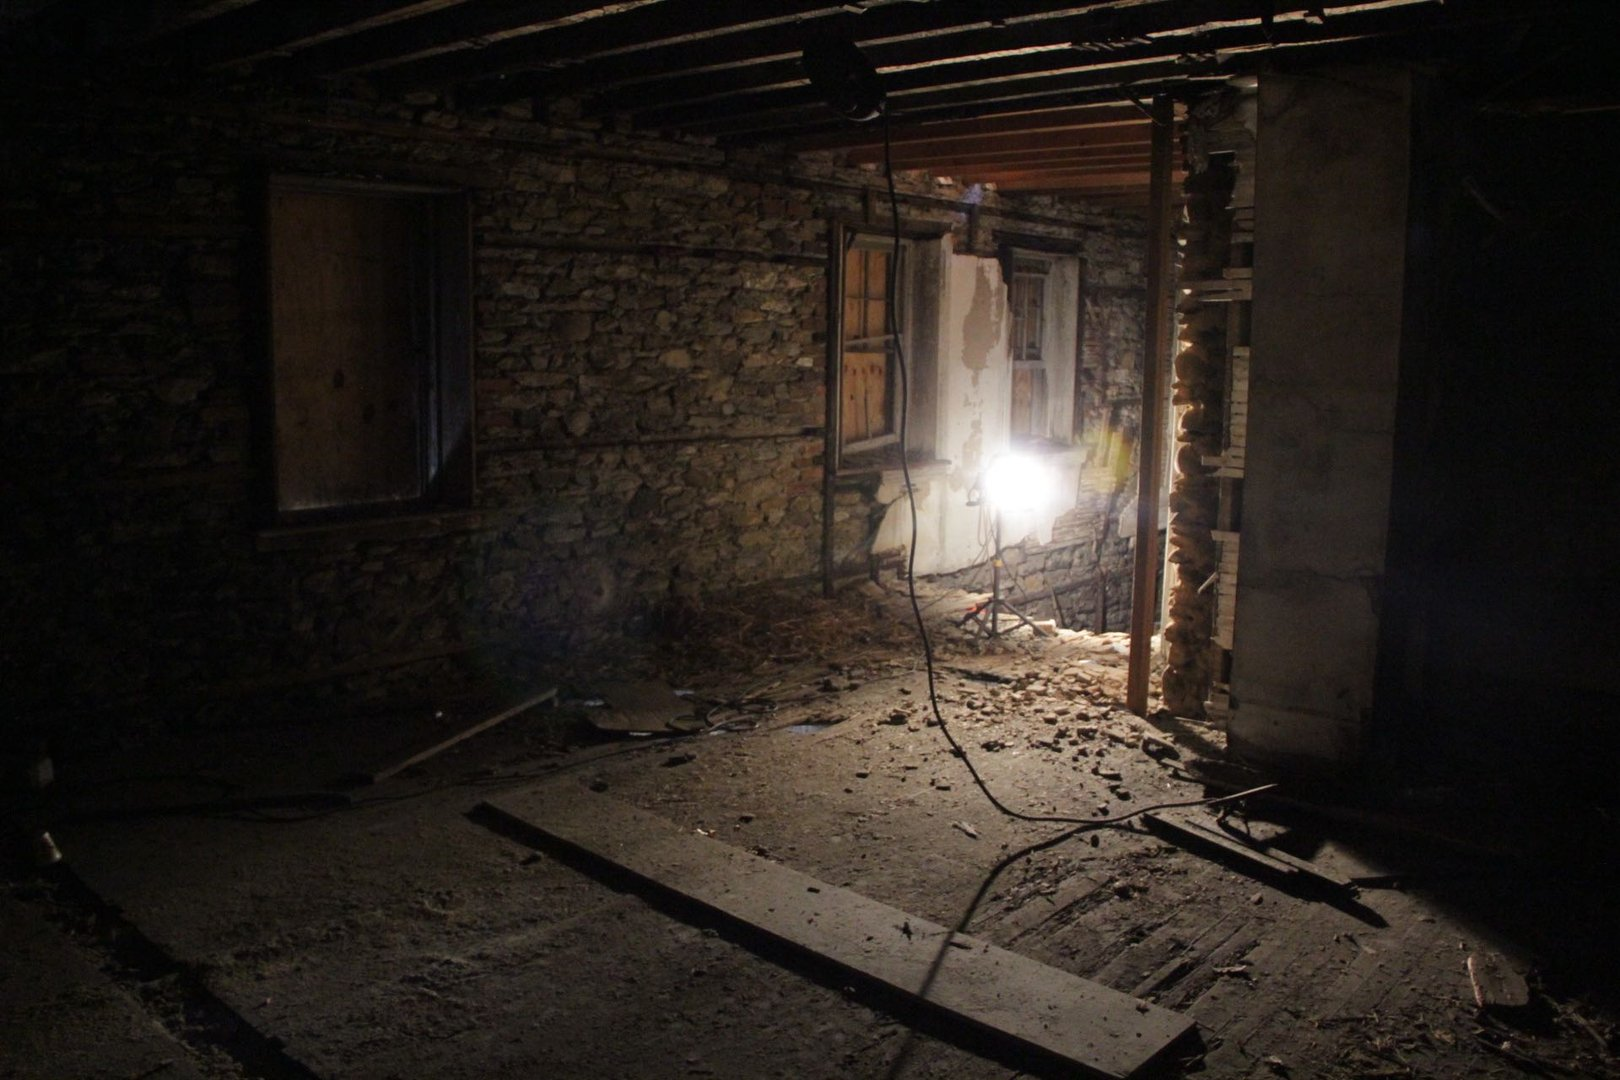 This image was taken while the Friends of Bolton Mansion worked on its restoration.